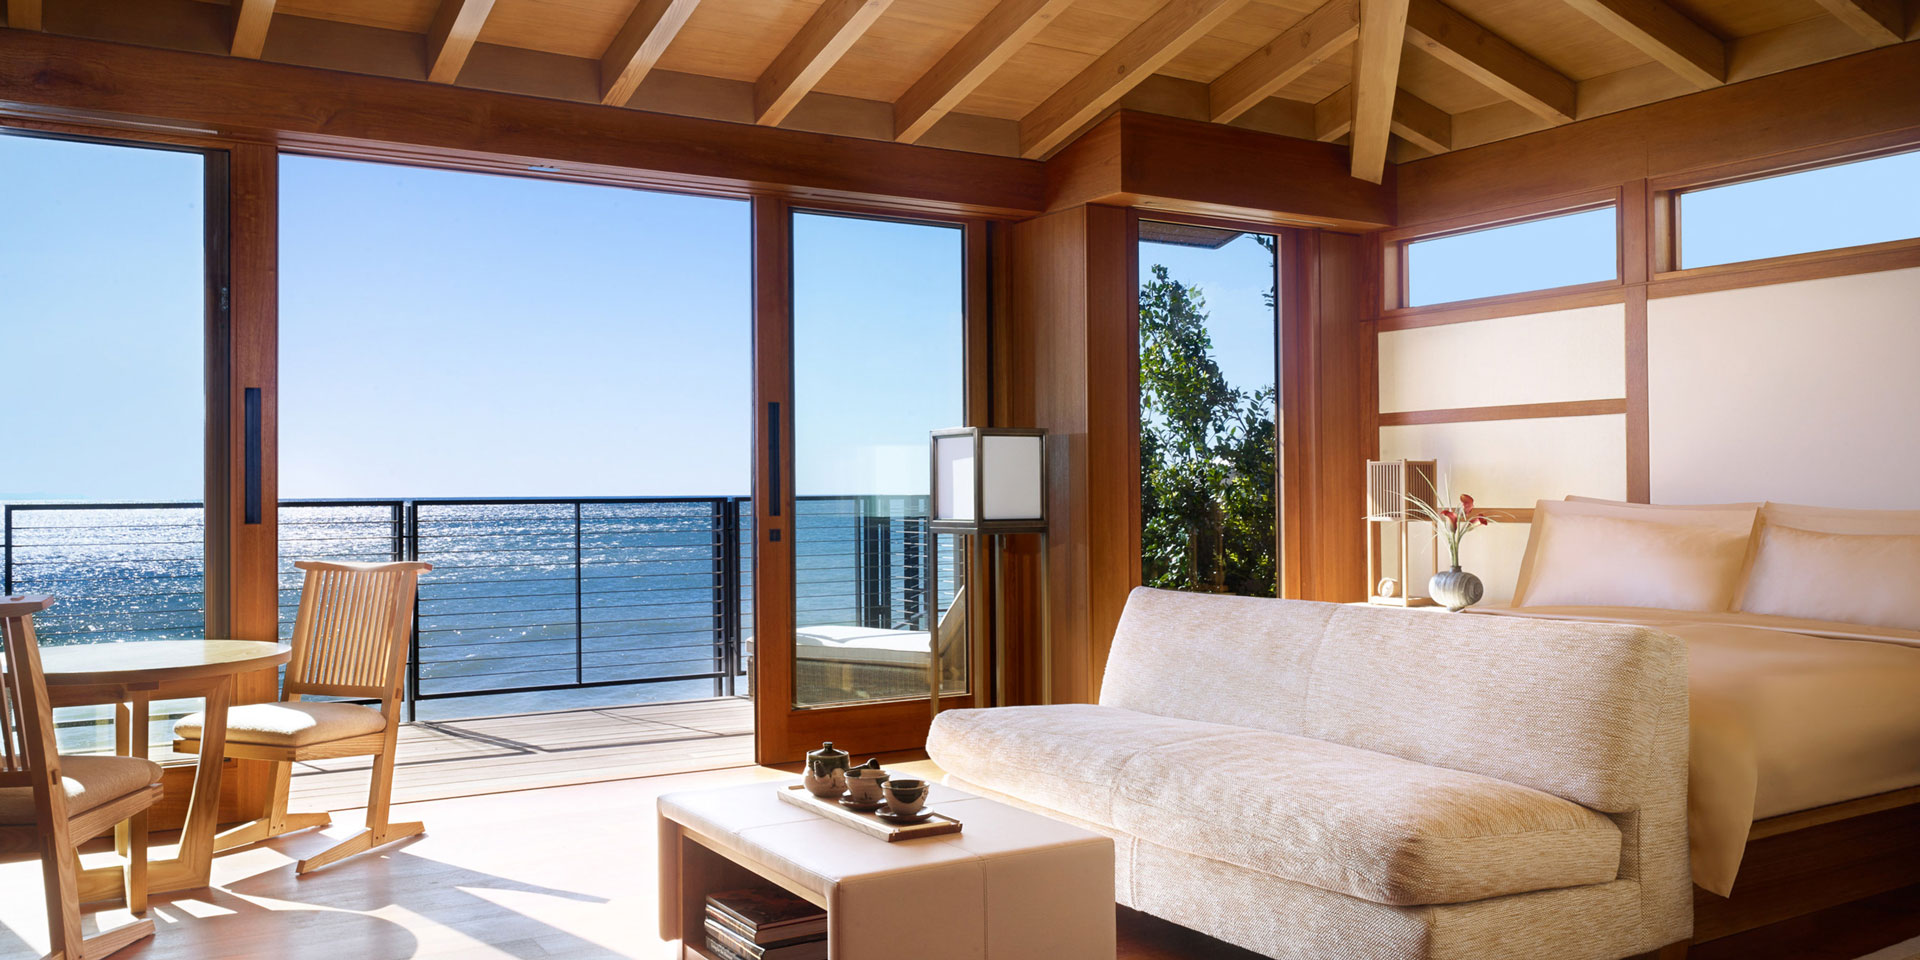 Nobu Hotels to grow its portfolio slowly over the coming years